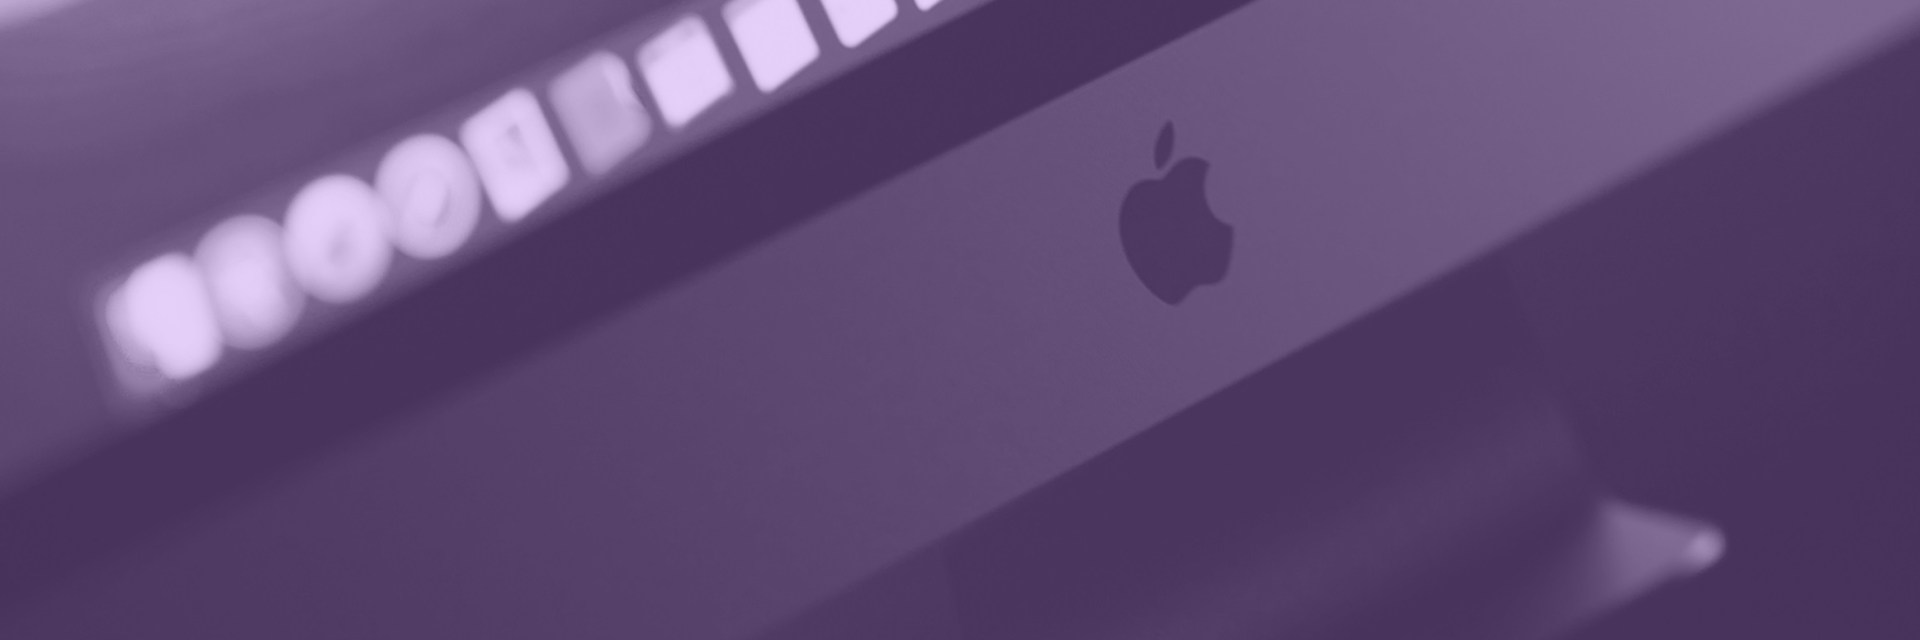 Malware for macOS managed to infect 40,000 of computers